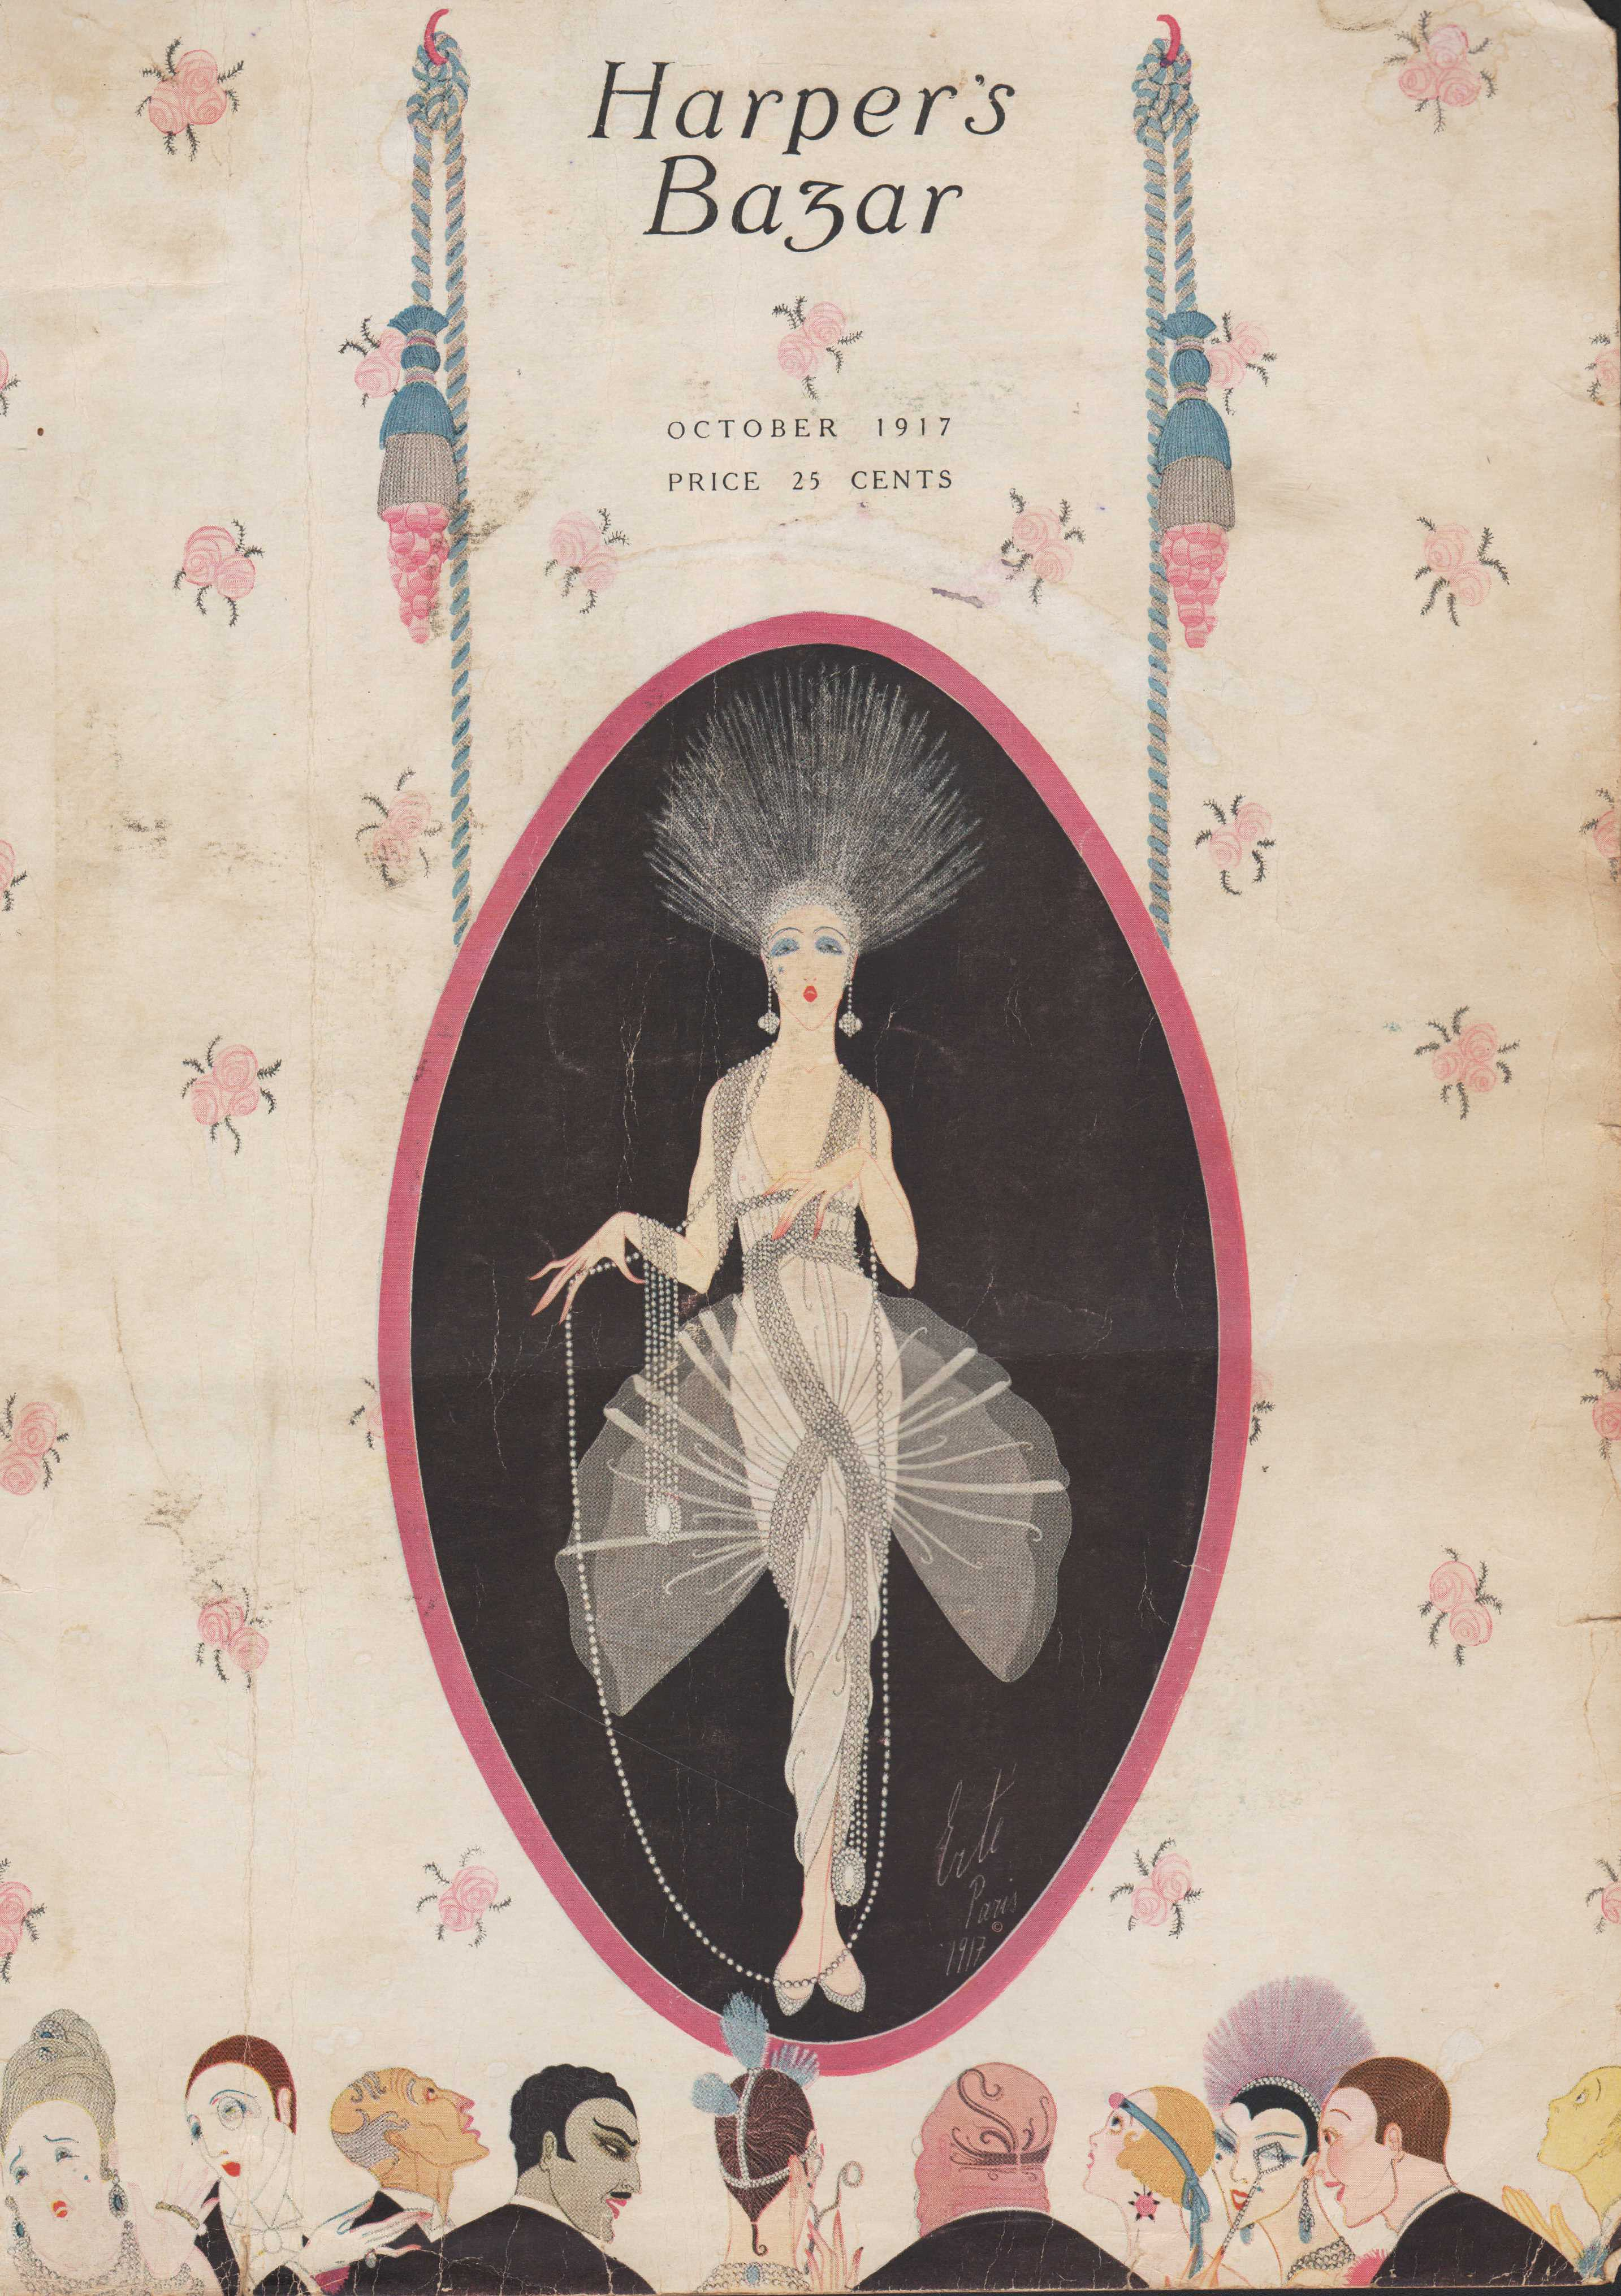 Image for Harper's Bazar (Harper's Bazaar). October 1917 - Cover Only